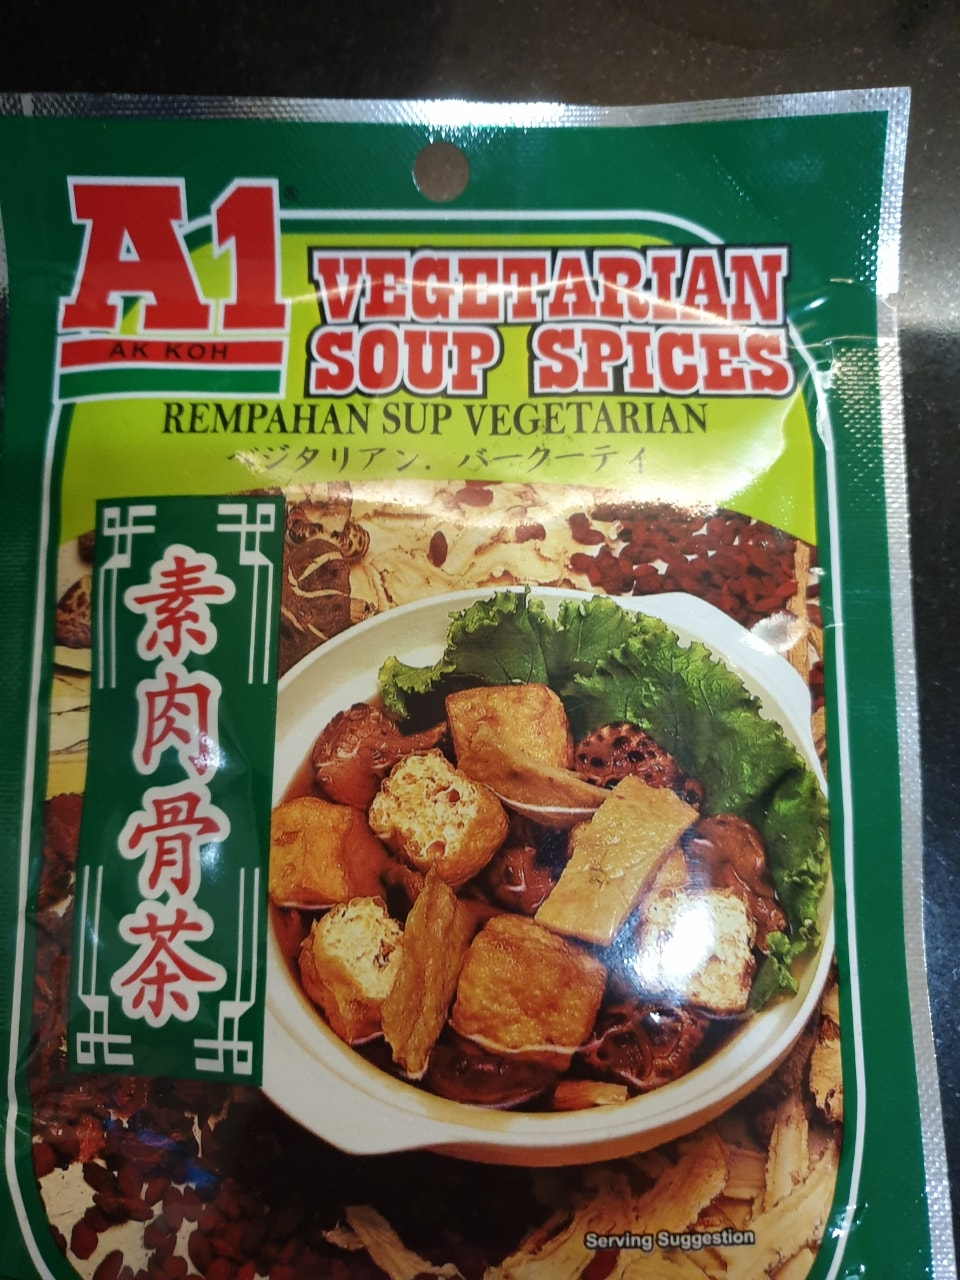 A1 Vegetarian Soup Spices